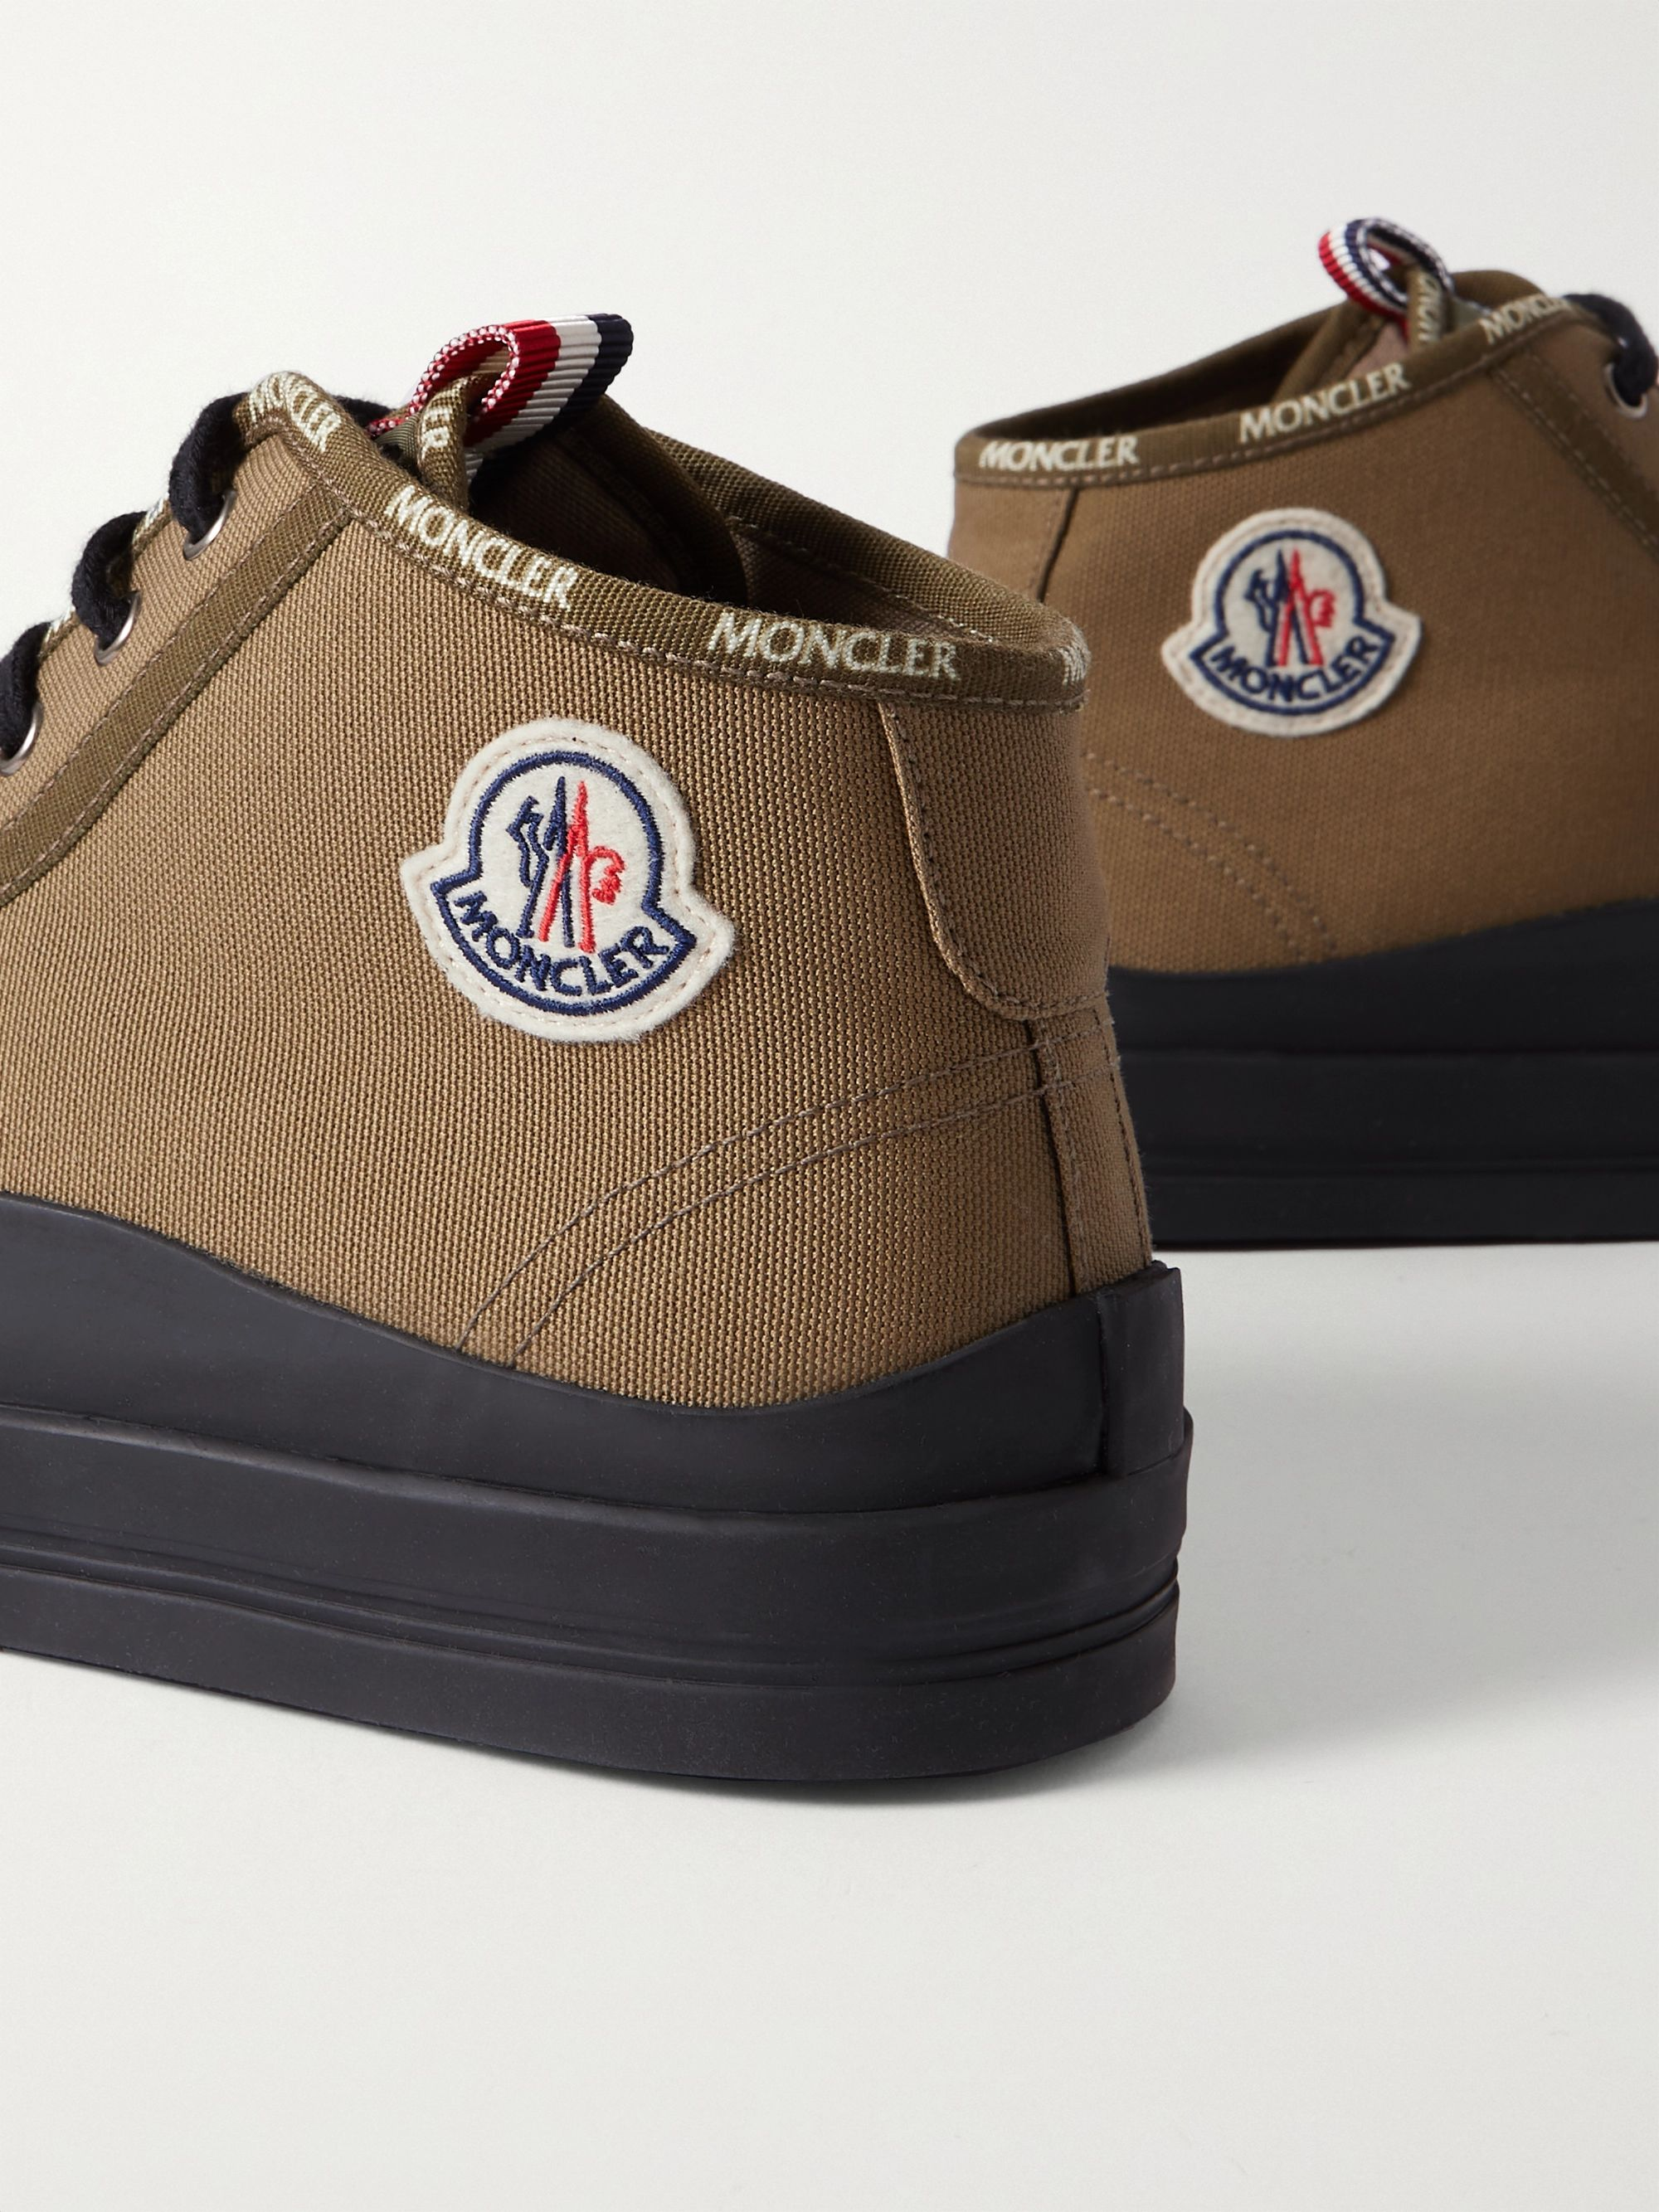 MONCLER Lissex Logo-Appliquéd Cotton-Canvas High-Top Sneakers